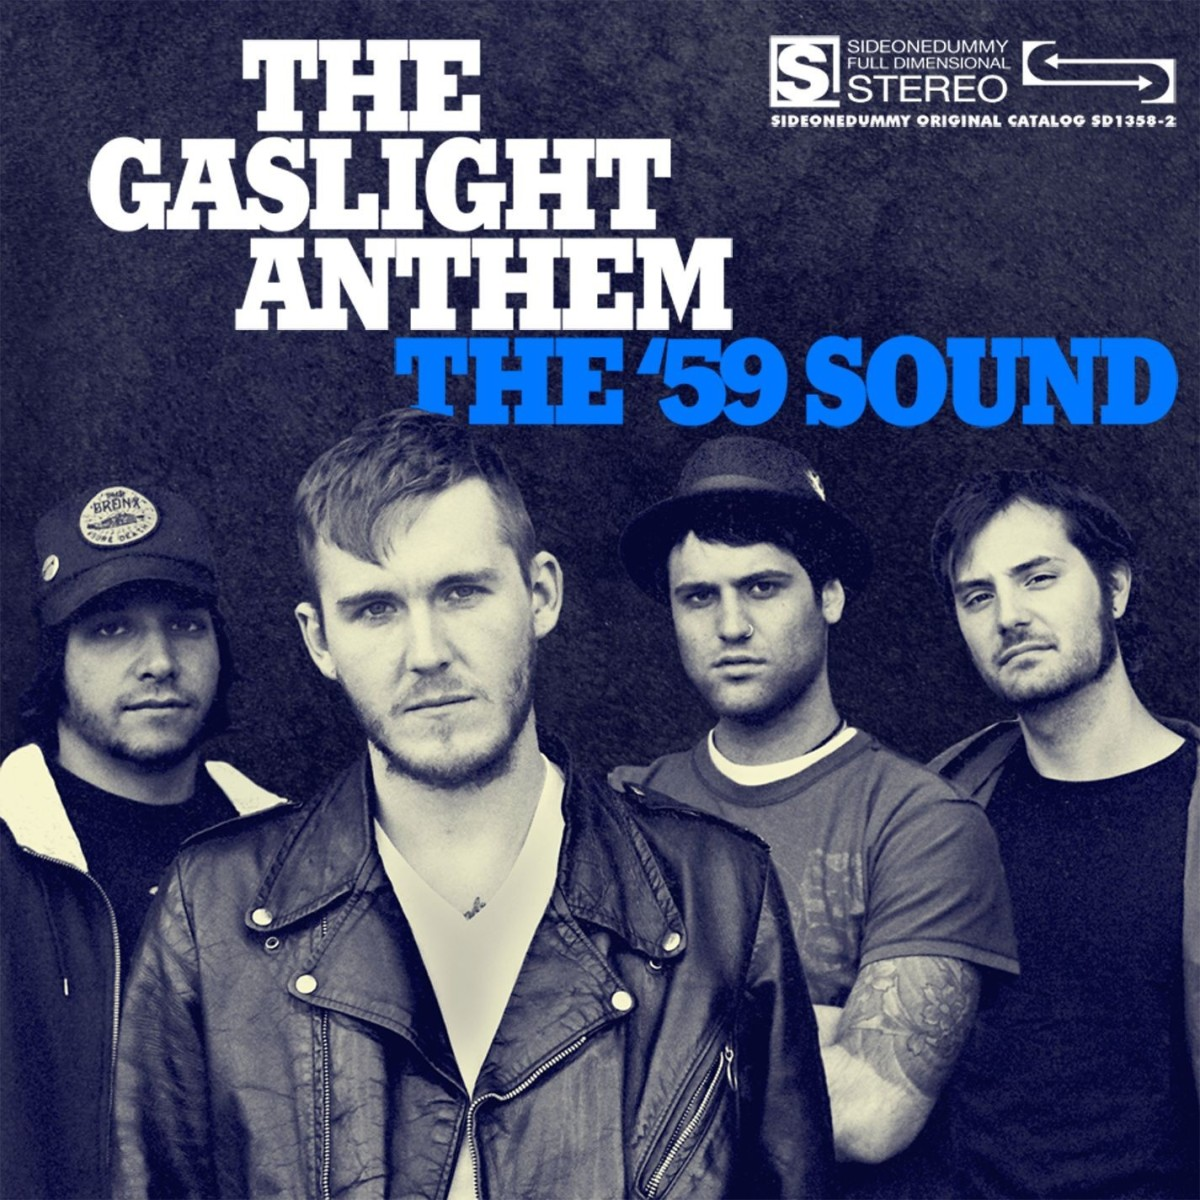 The Gaslight Anthem The 59 Sound tour